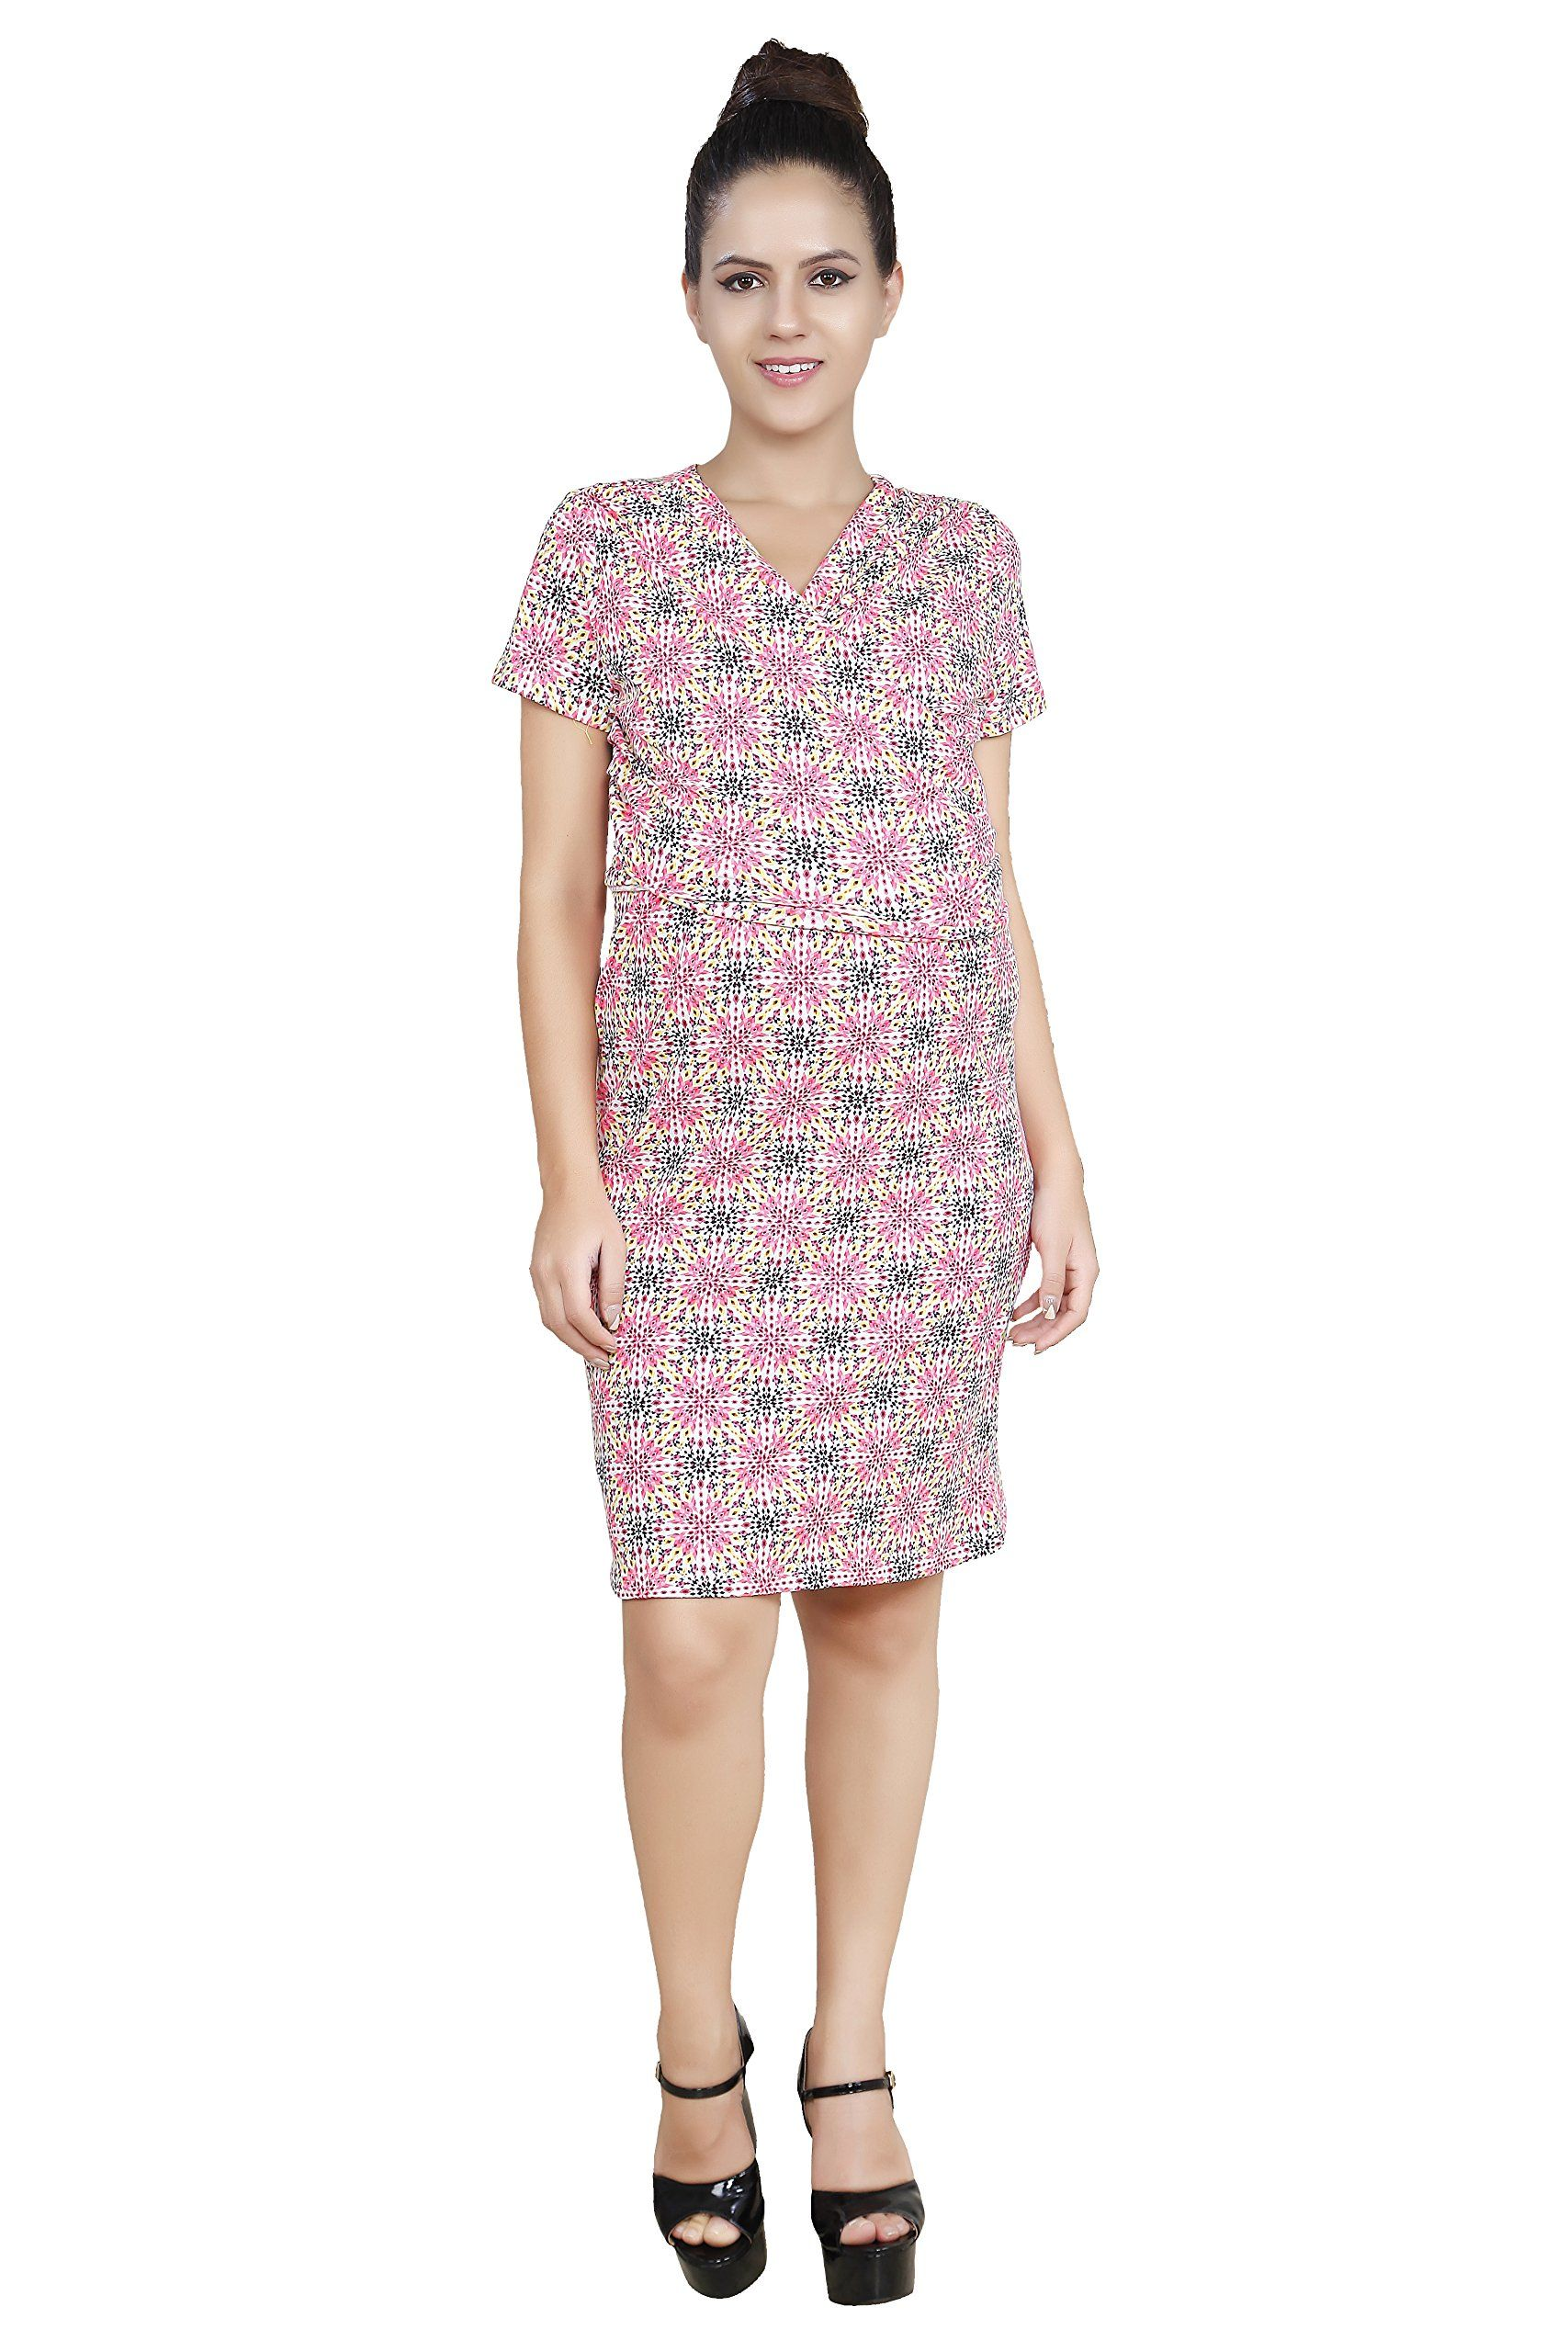 e5a1f573e78 Maternity Fashion - oversized maternity dresses   Blush 9 Womens  Overlapping Knee Length Maternity And Nursing Dress Large WhitePink      Learn more about ...